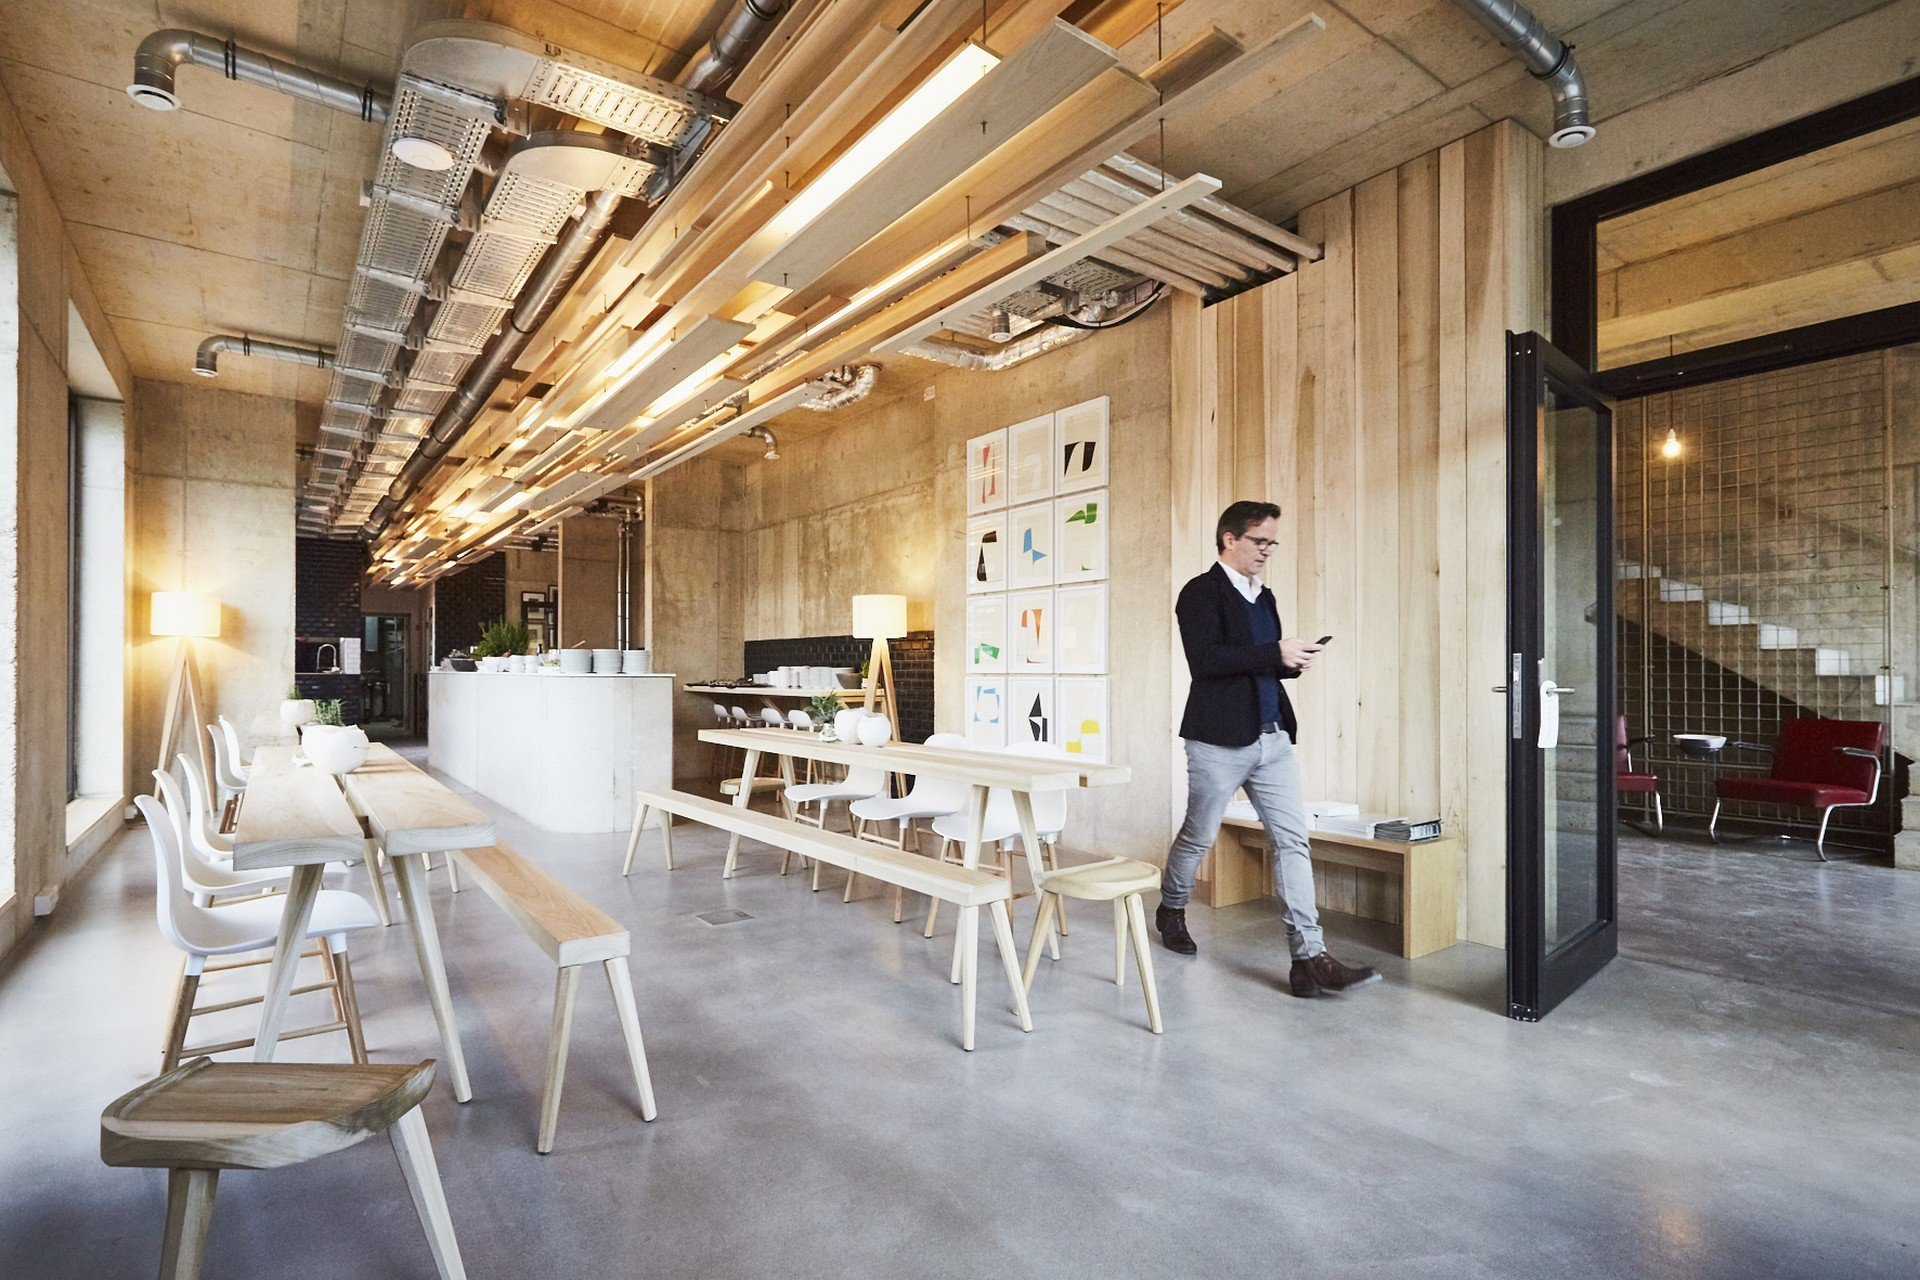 """Cologne workshop spaces Unusual ipartment - """"living kitchen"""" image 0"""